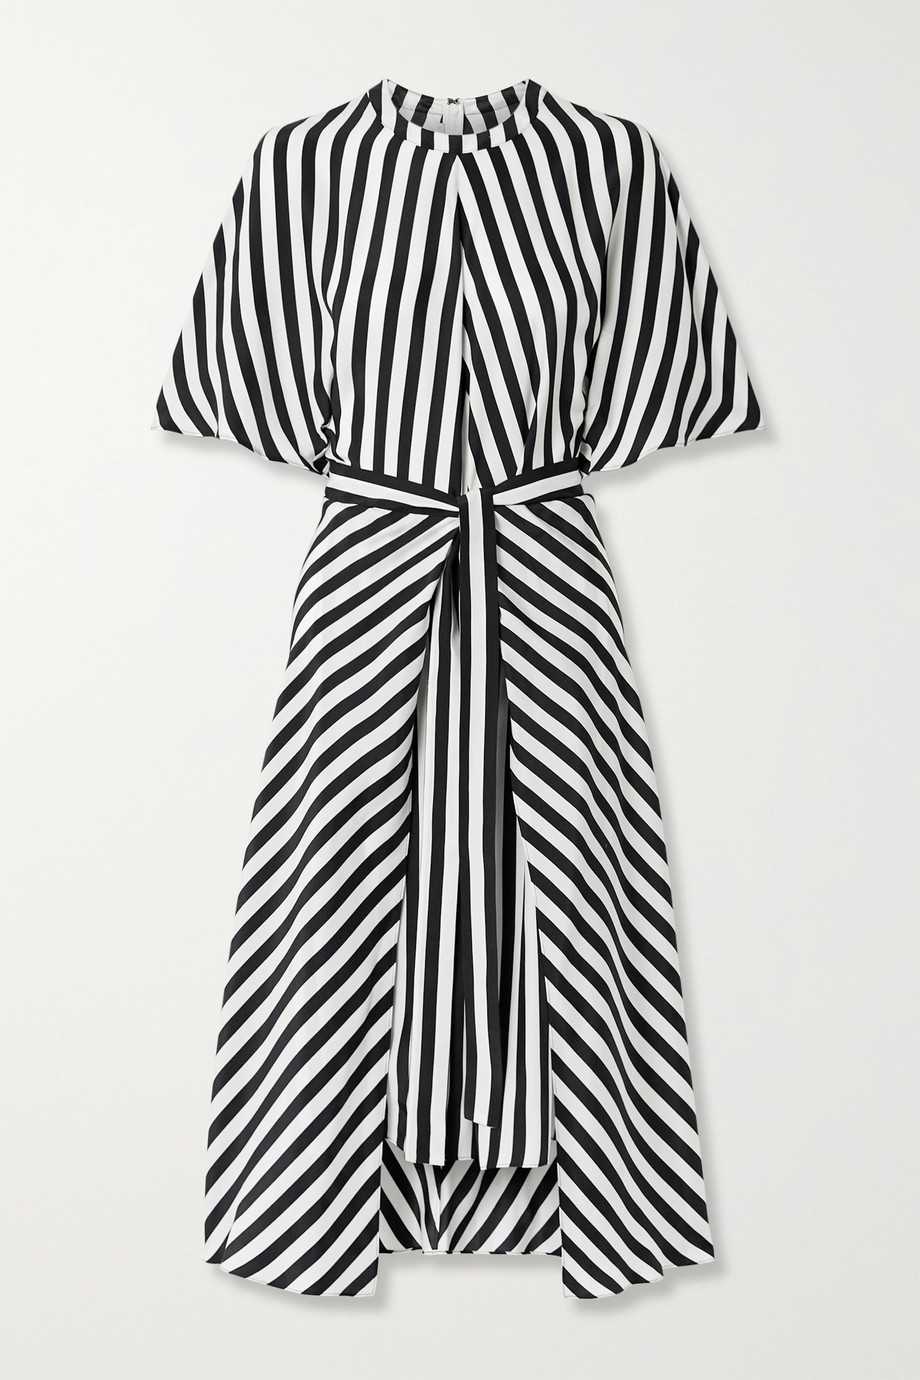 Stella McCartney Penelope belted striped silk-satin midi dress